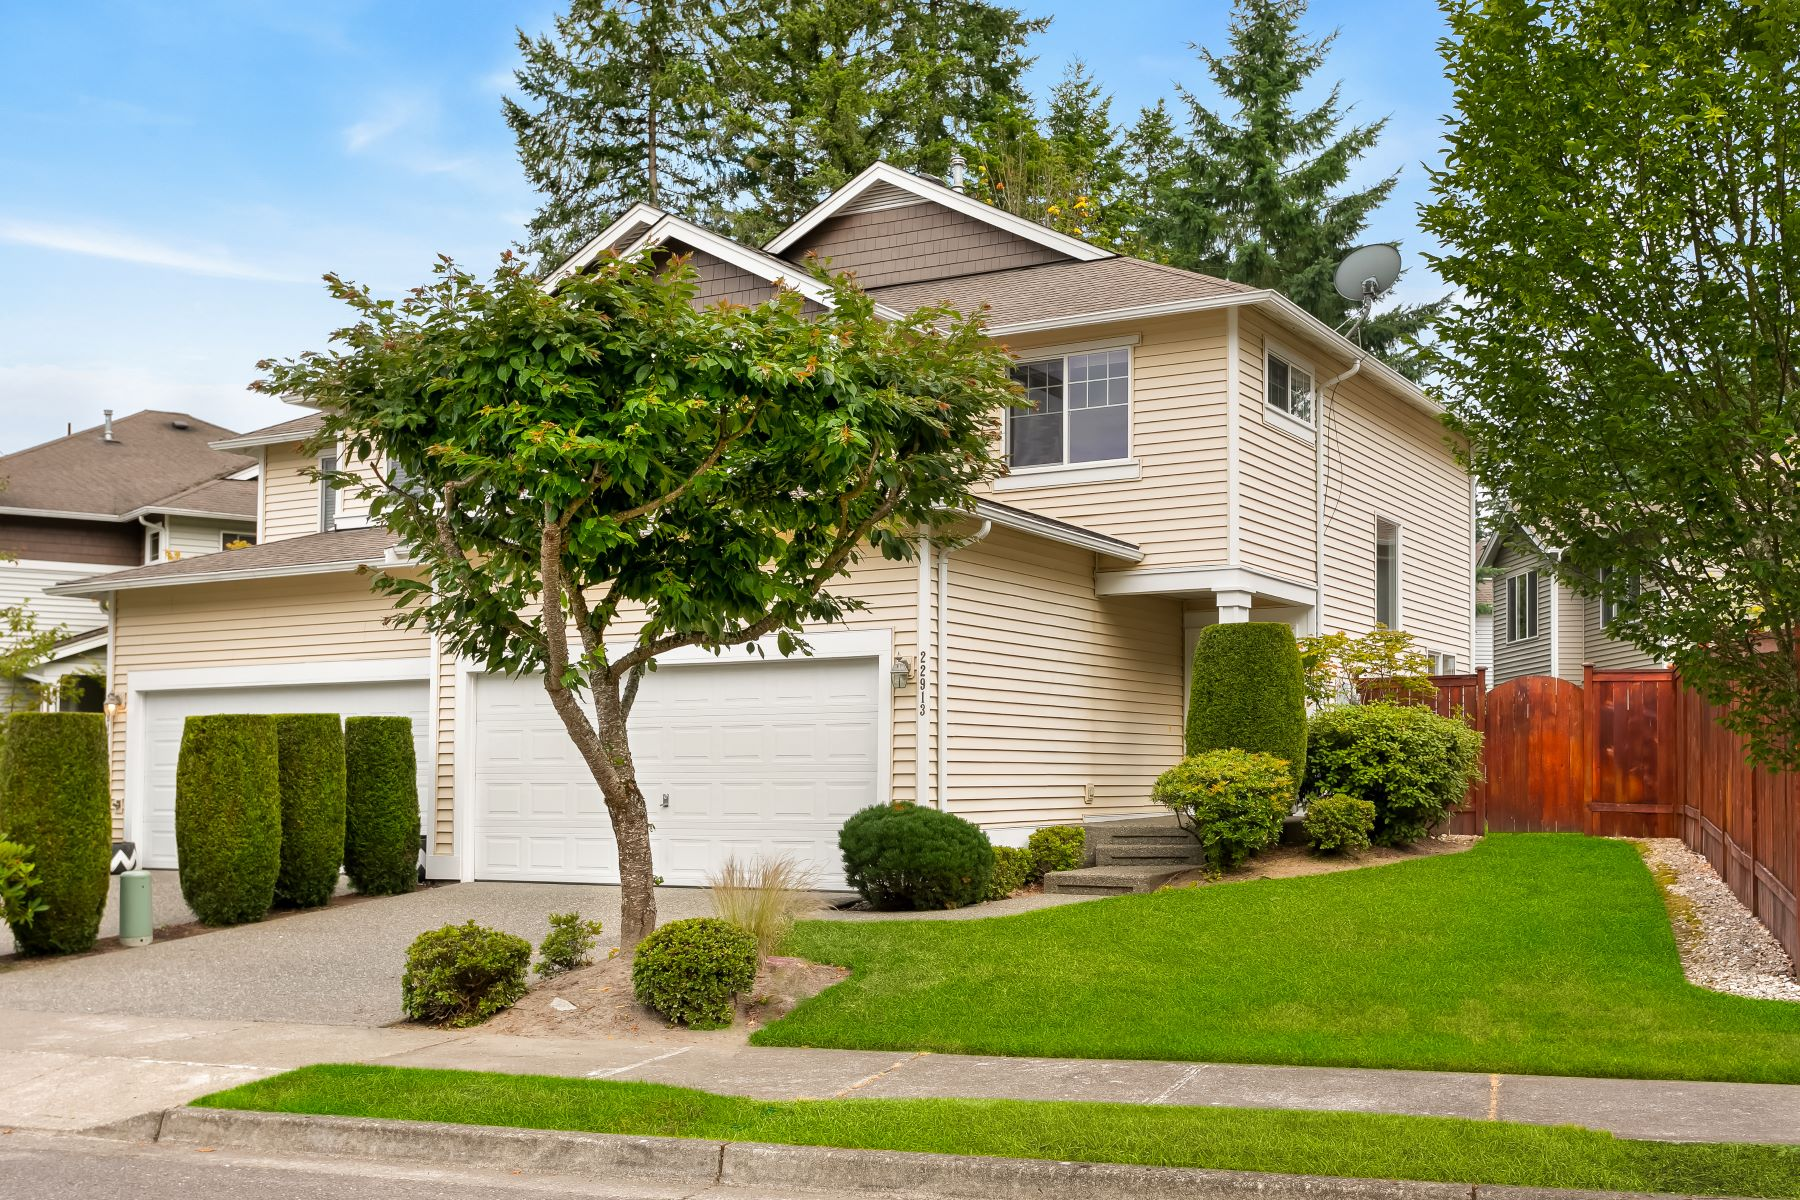 townhouses for Sale at 22913 240th Place SE, Maple Valley, WA 98038 22913 240th Place SE Maple Valley, Washington 98038 United States